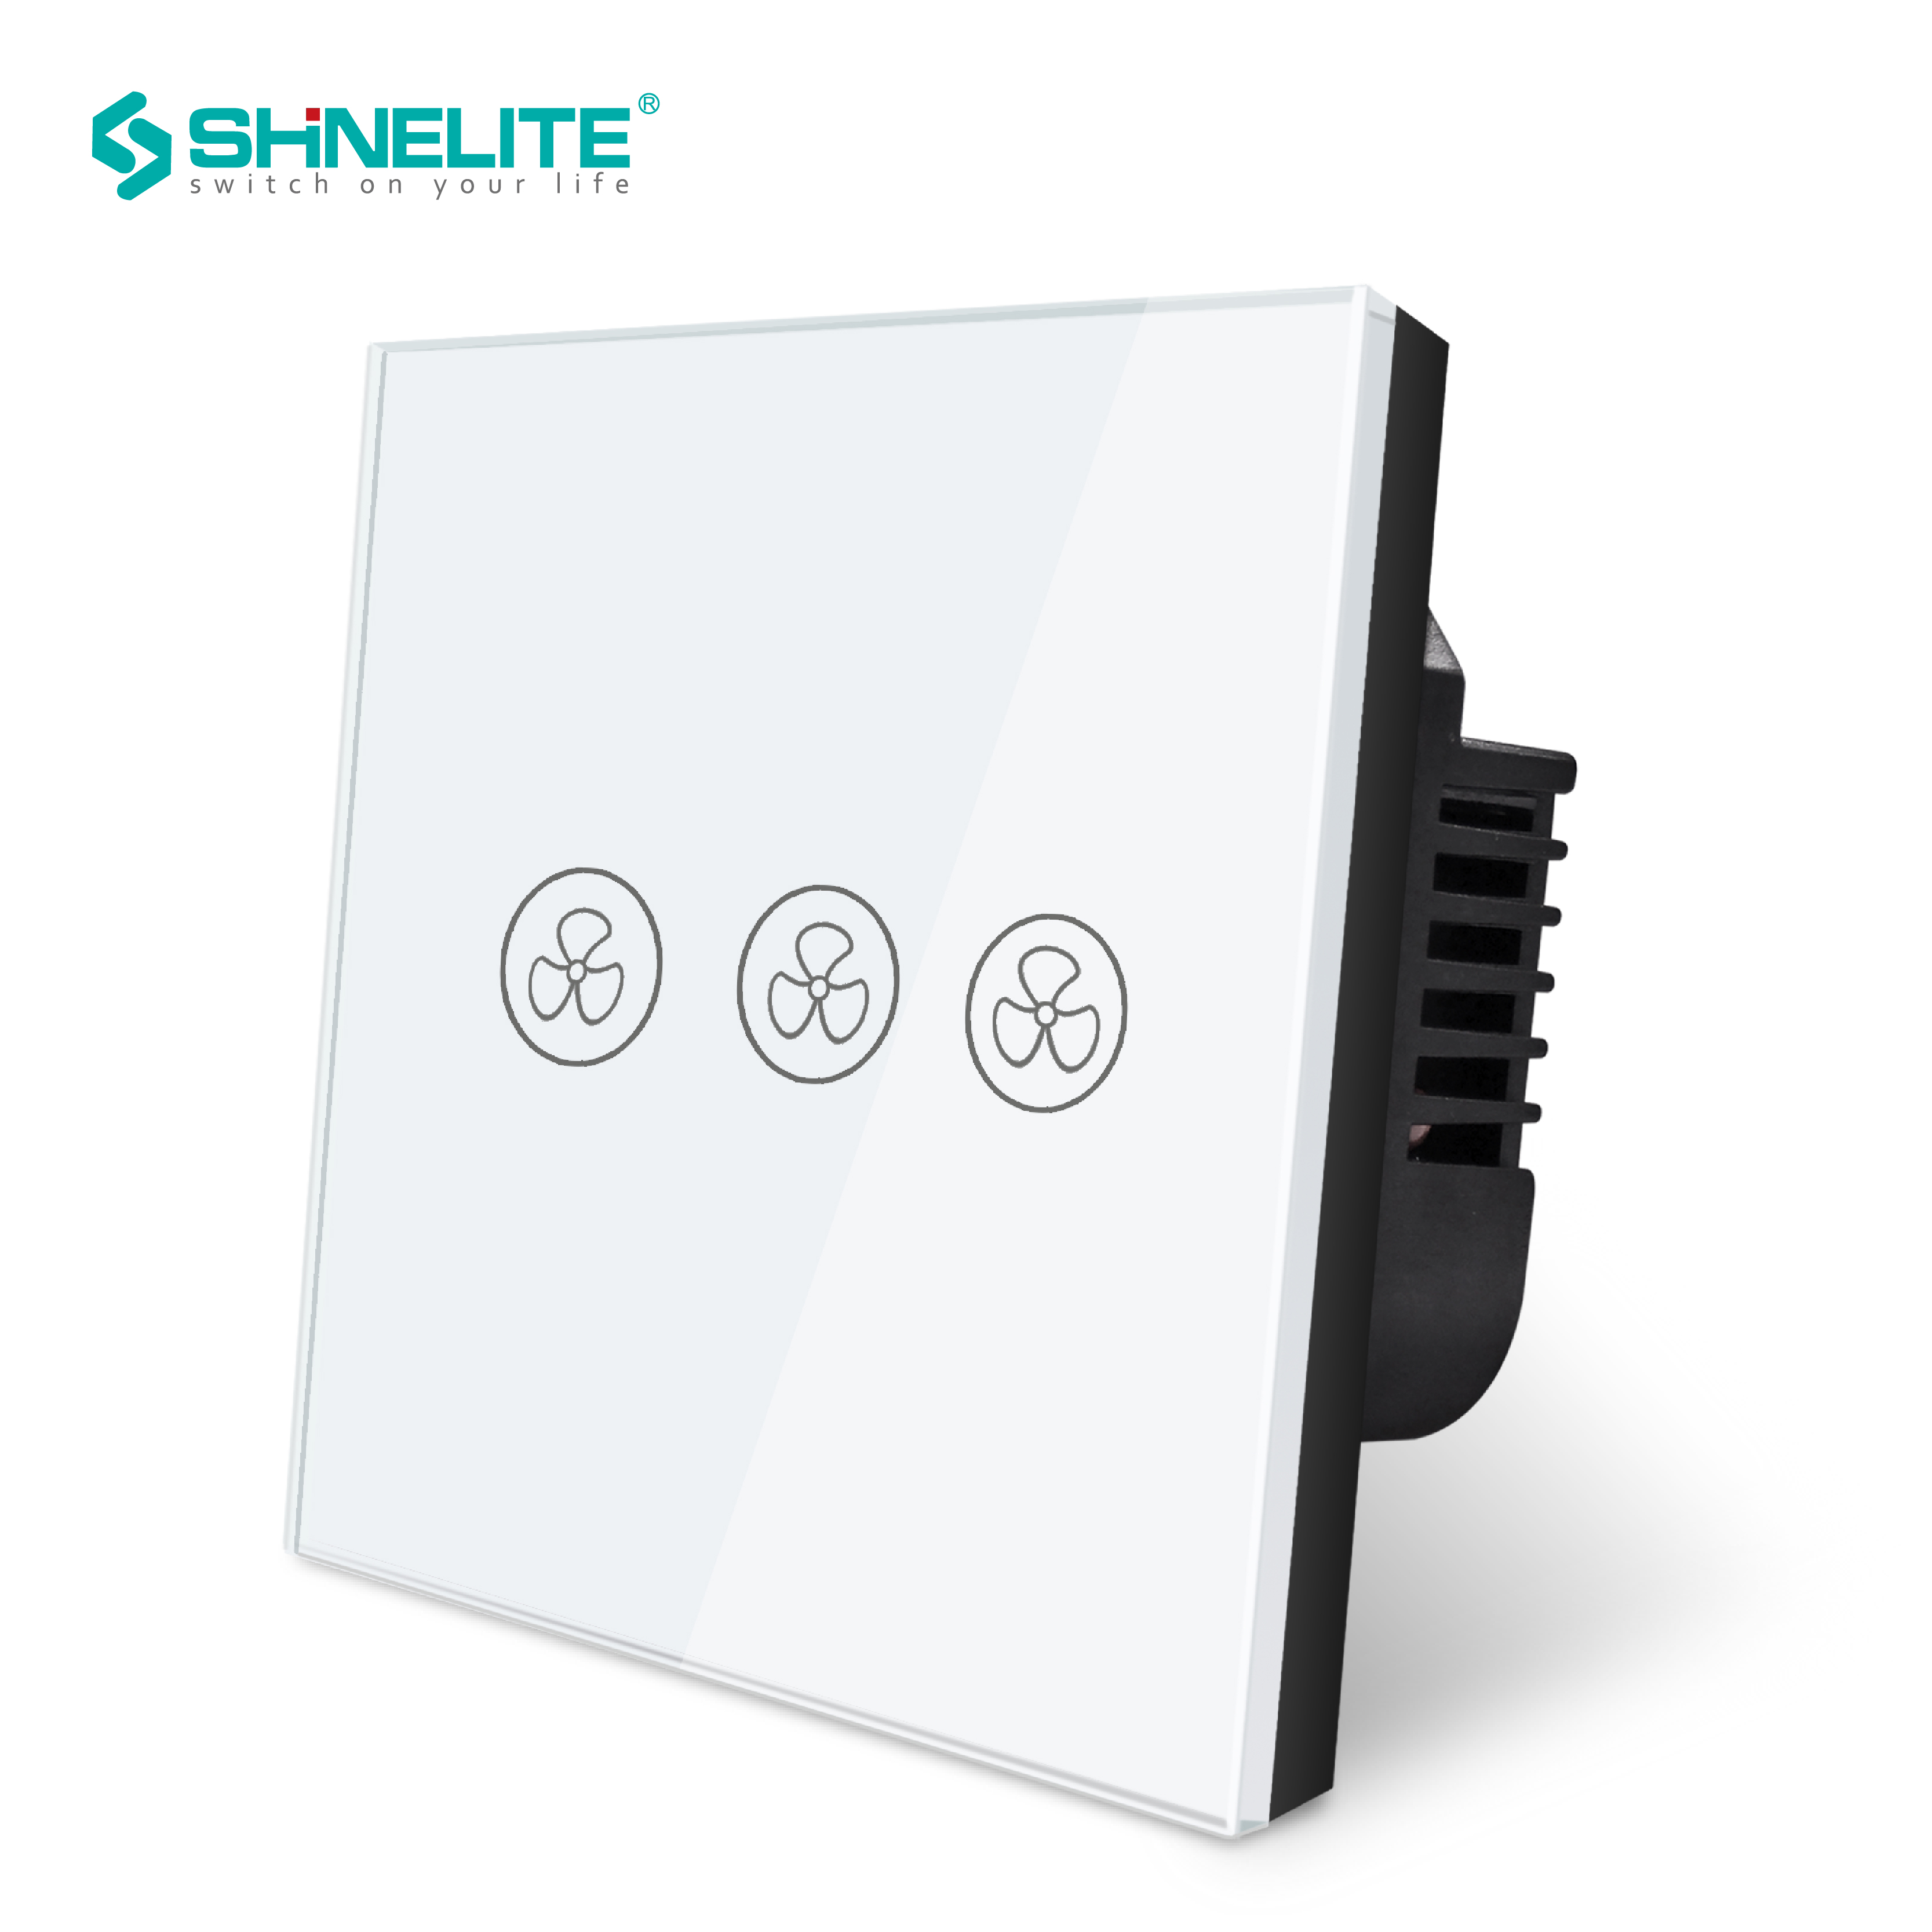 SHINELITE EU/UK Touch Screen Fan Switch,Speed Regulation,Crystal Glass Panel Fan Switch , AC 110~240V Home Wall Switch easy steps to chinese for kids with cd 1b textbook